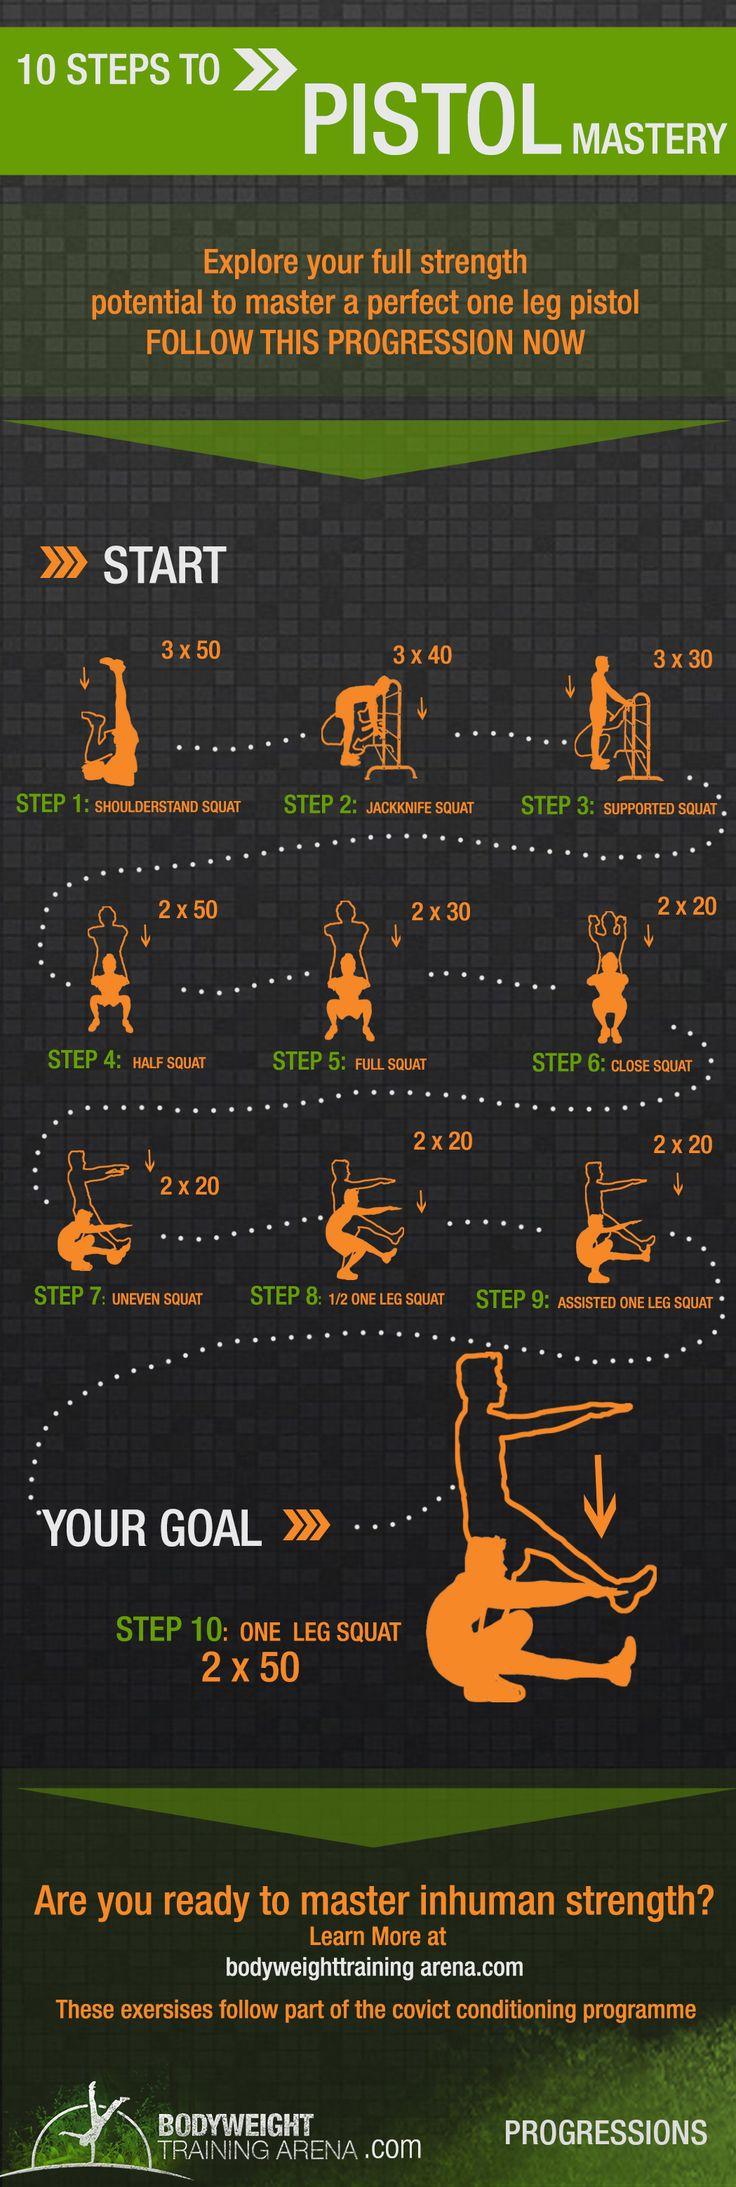 Love this, I'll be trying this soon! #crossfit #WeightLoss